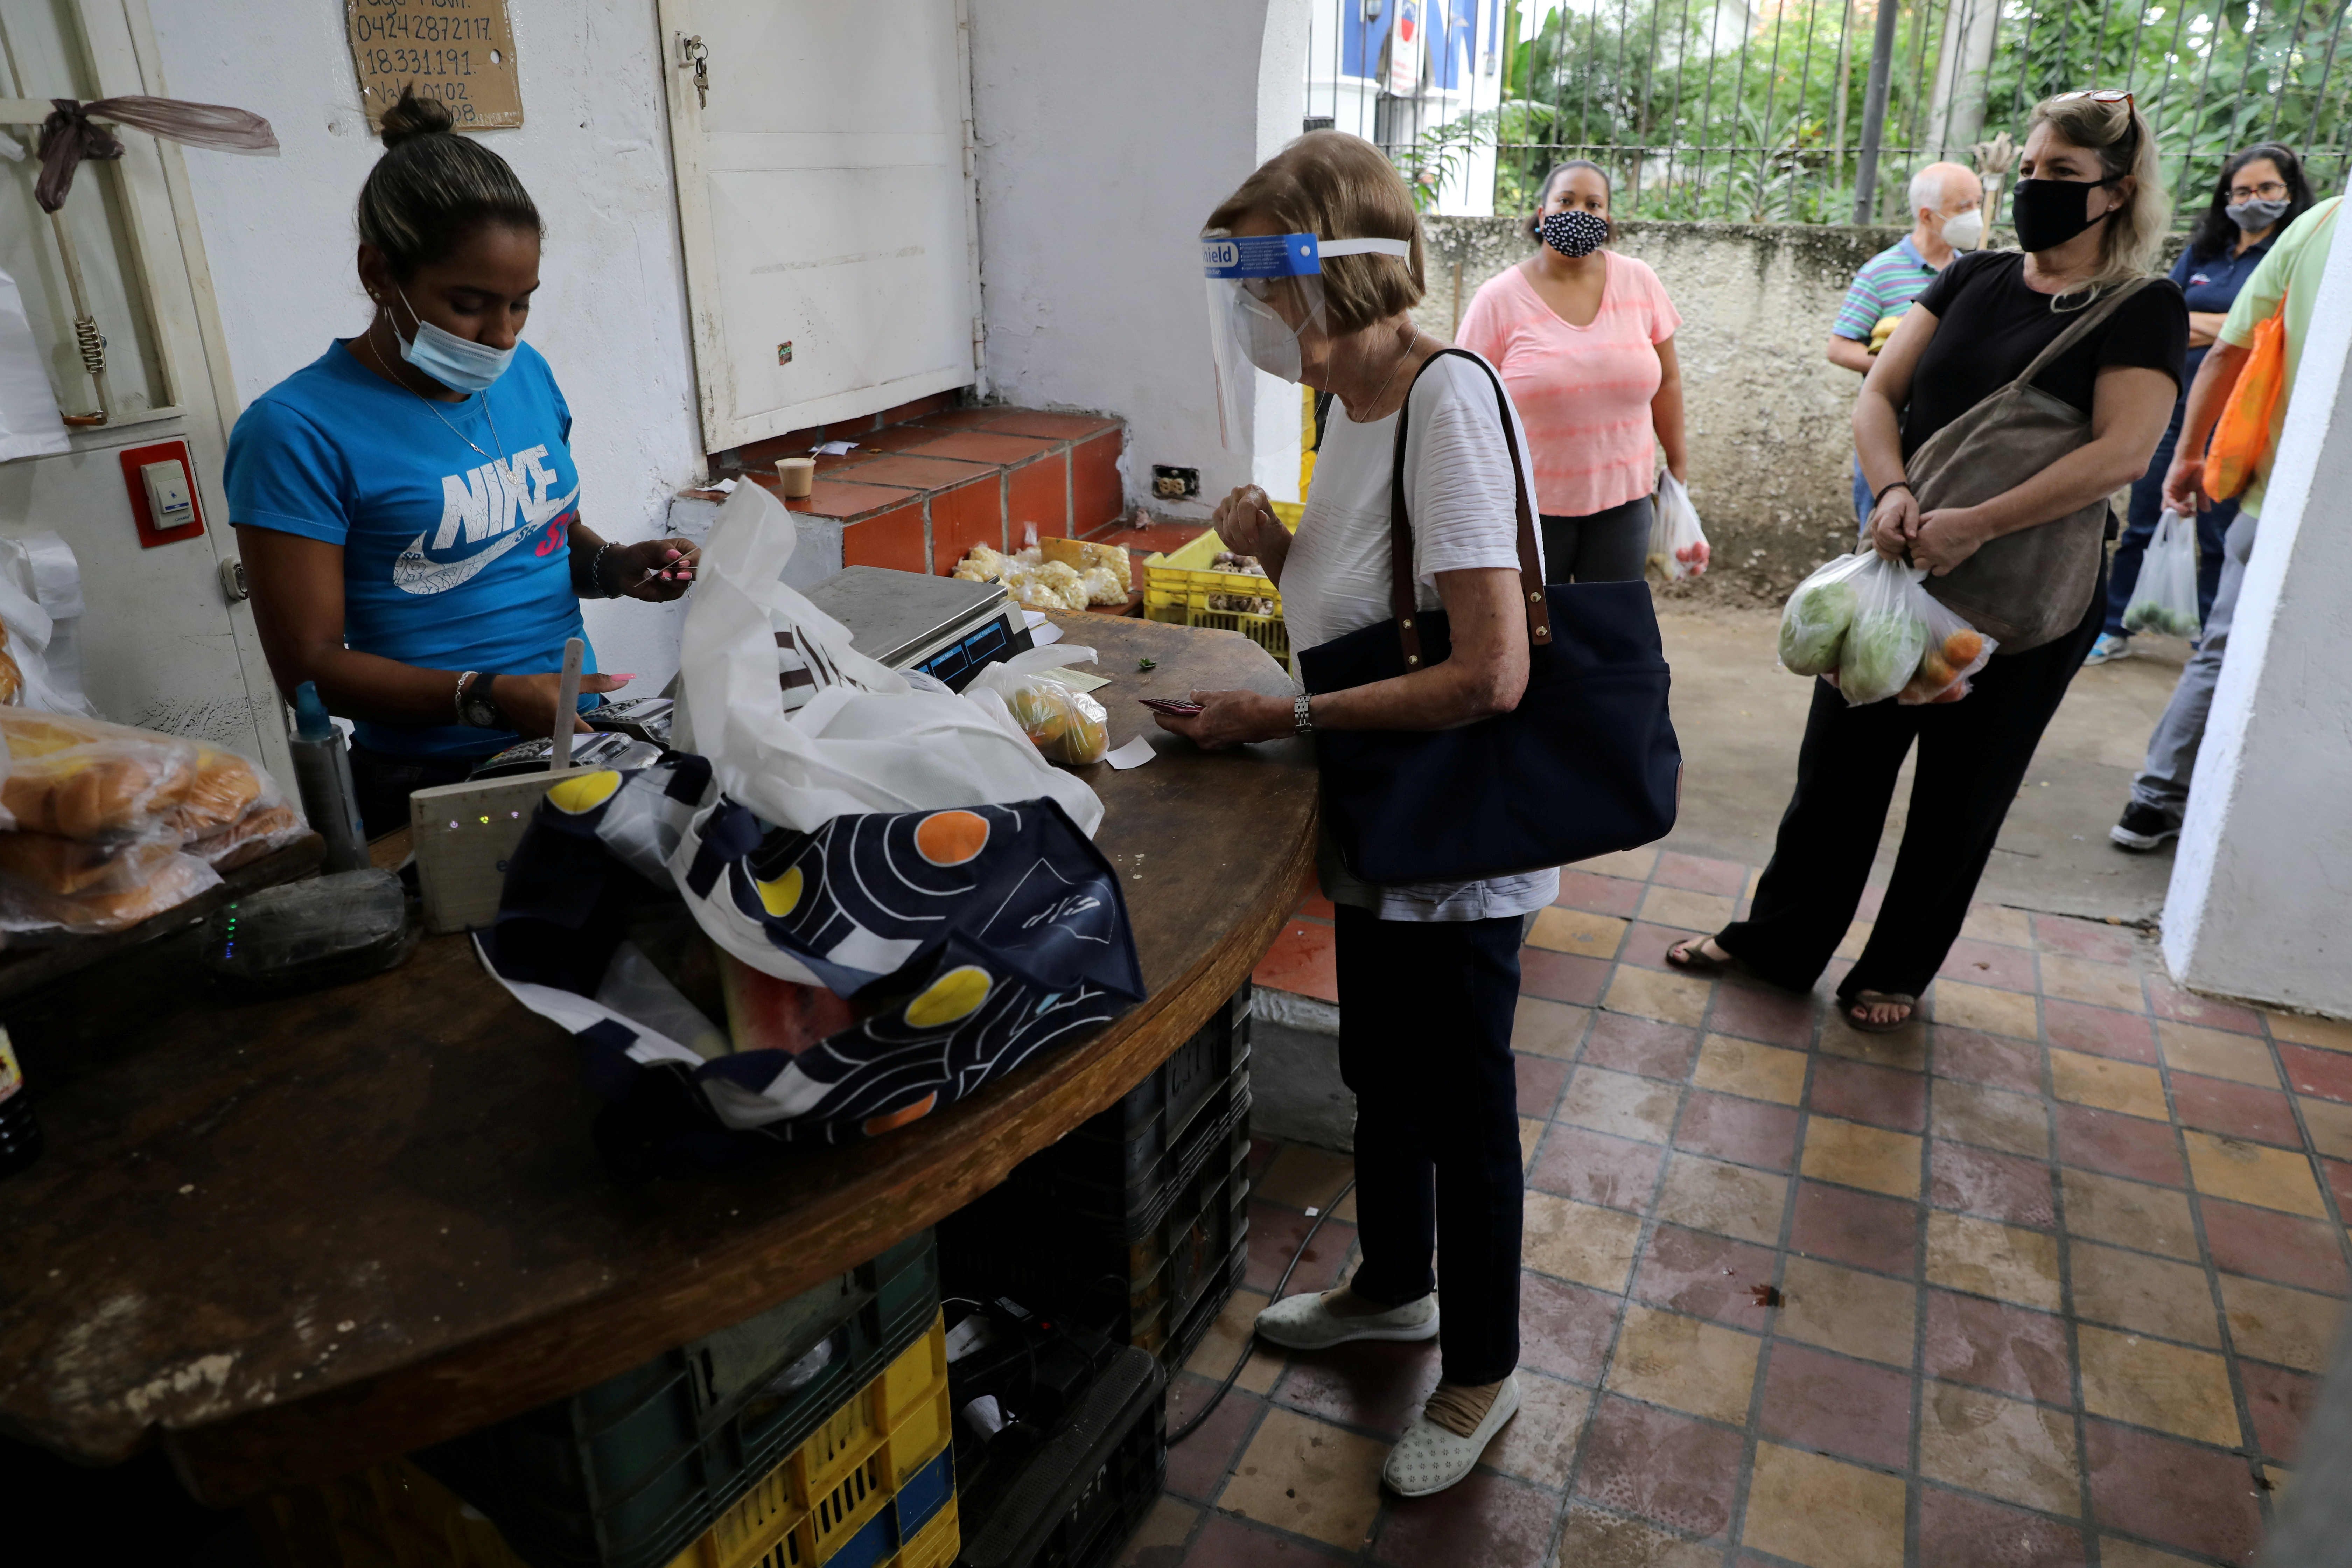 People wearing protective masks due to the coronavirus pandemic queue in an open-air fruit and vegetable market in Caracas, Venezuela December 22, 2020. Picture taken December 22, 2020. REUTERS/Manaure Quintero/File Photo